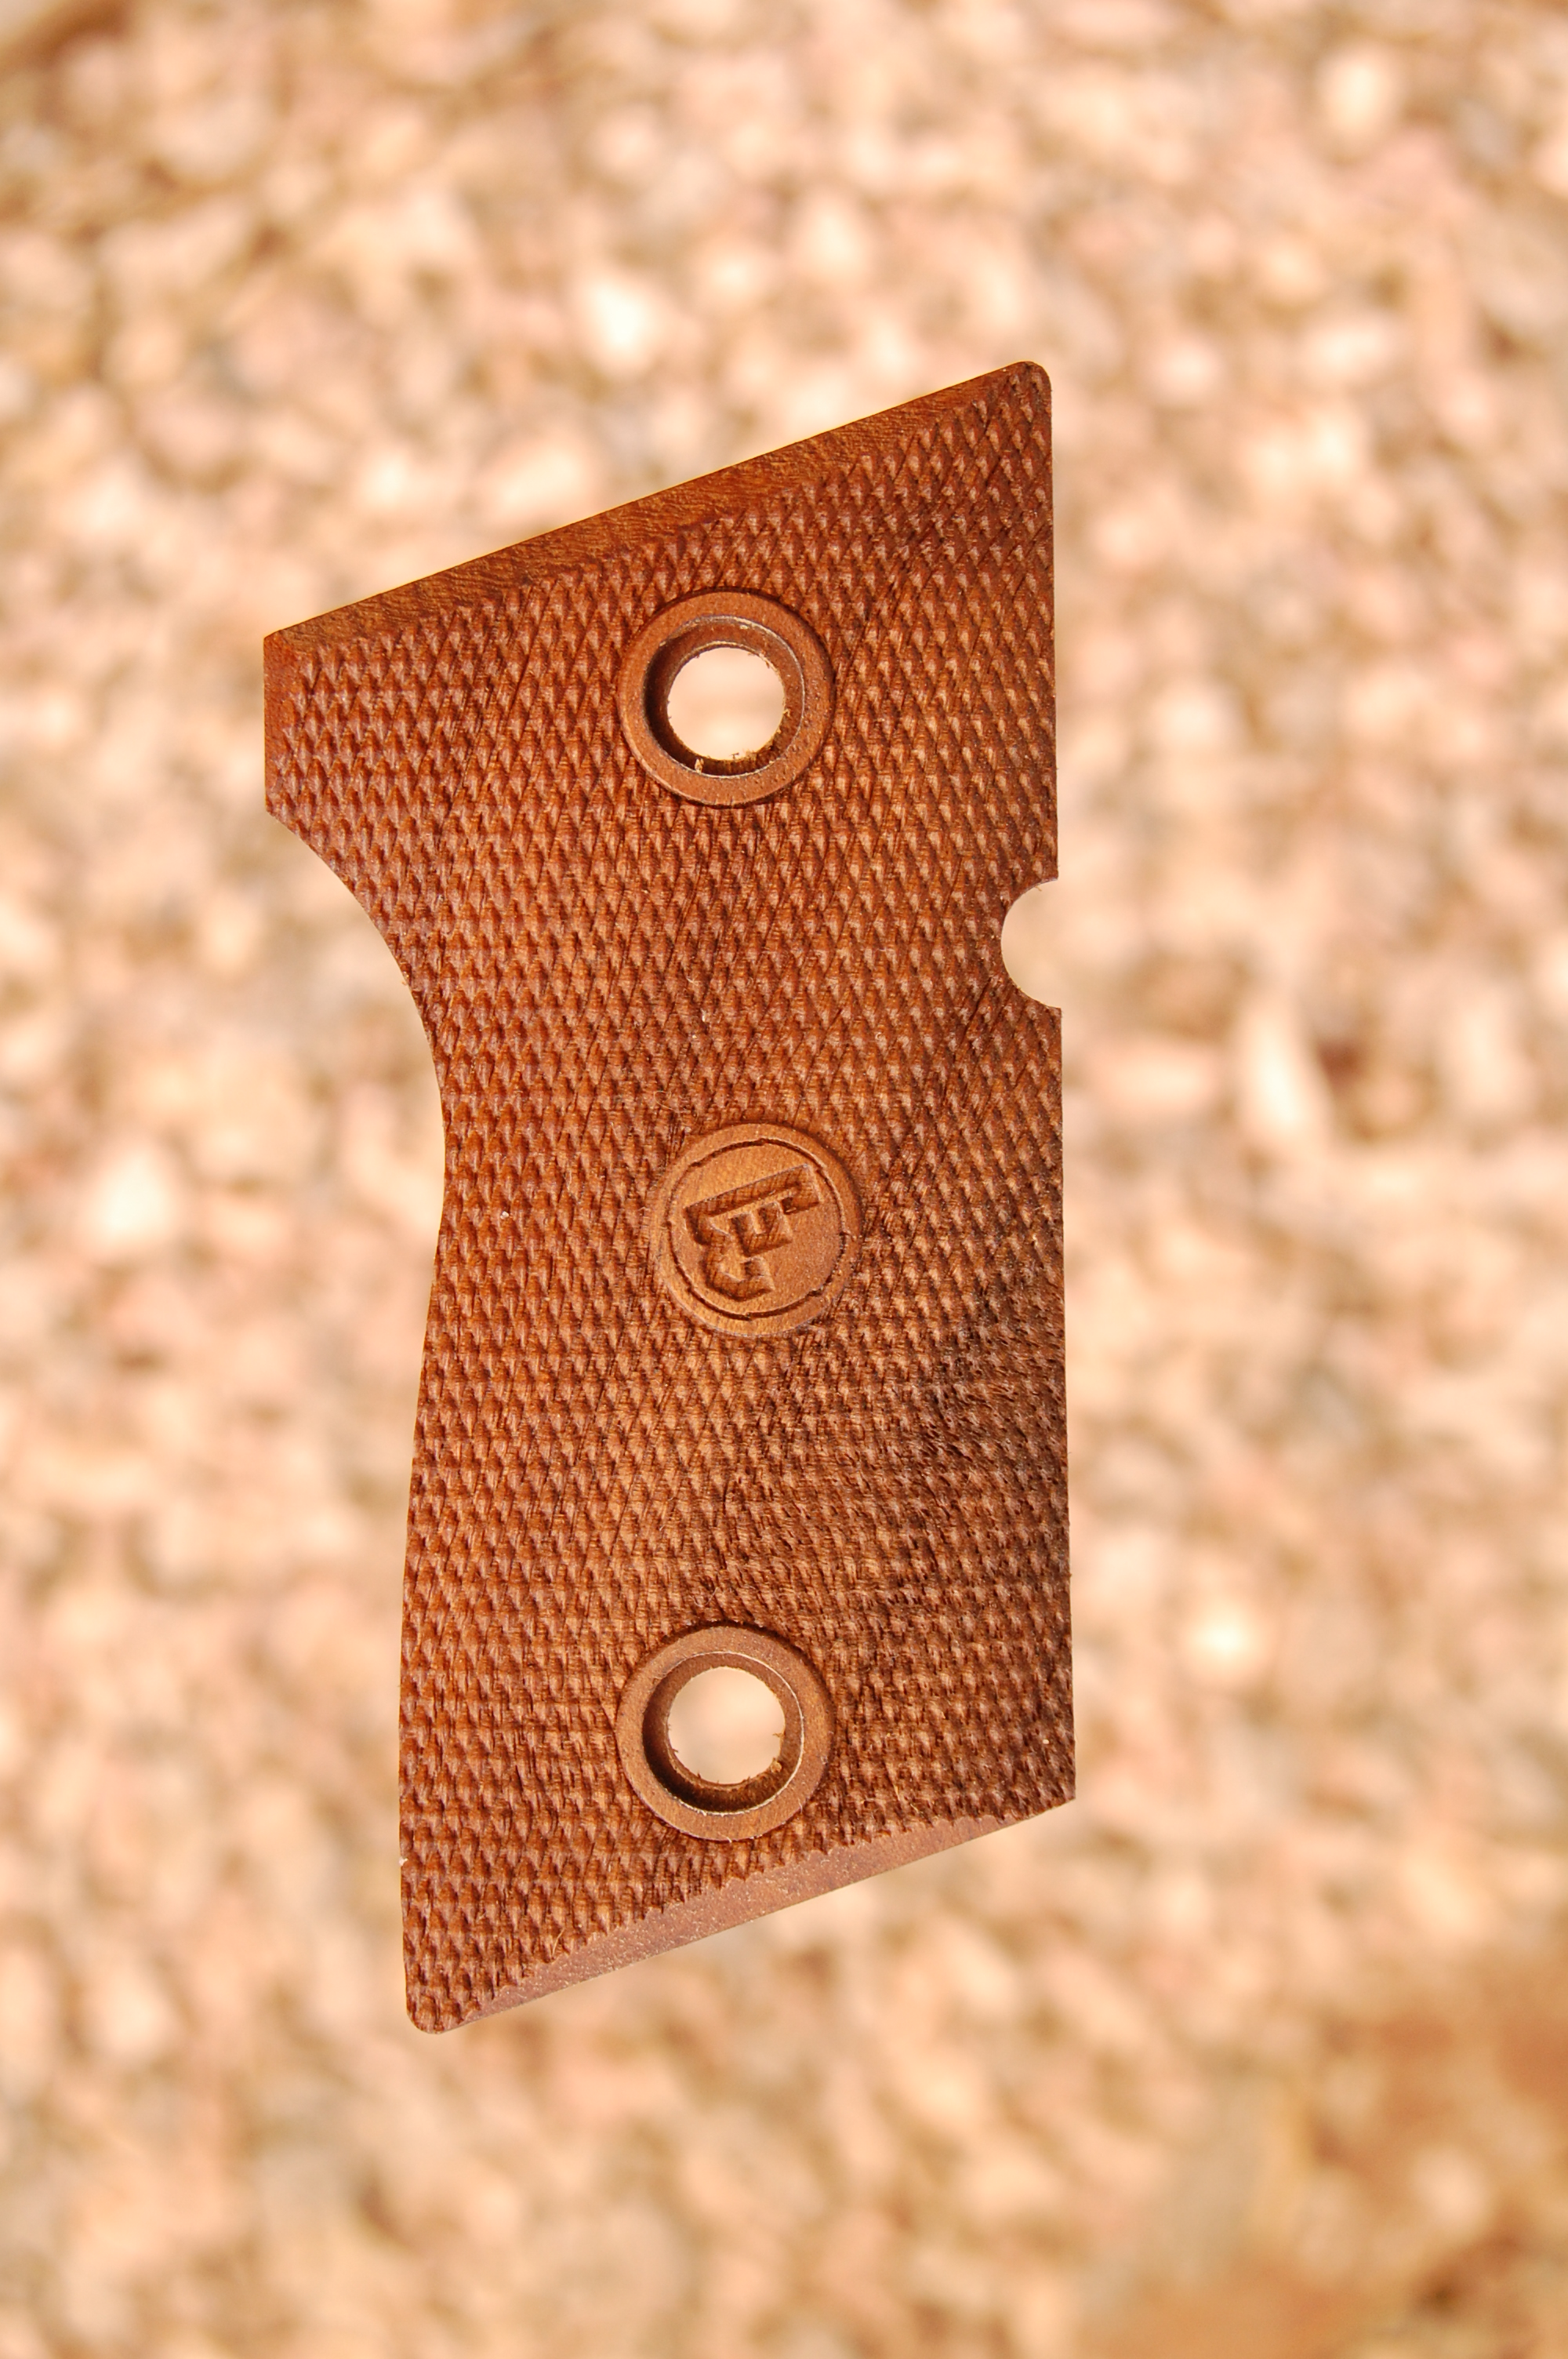 CZ 2075D RAMI grips (fully checkered) - full size